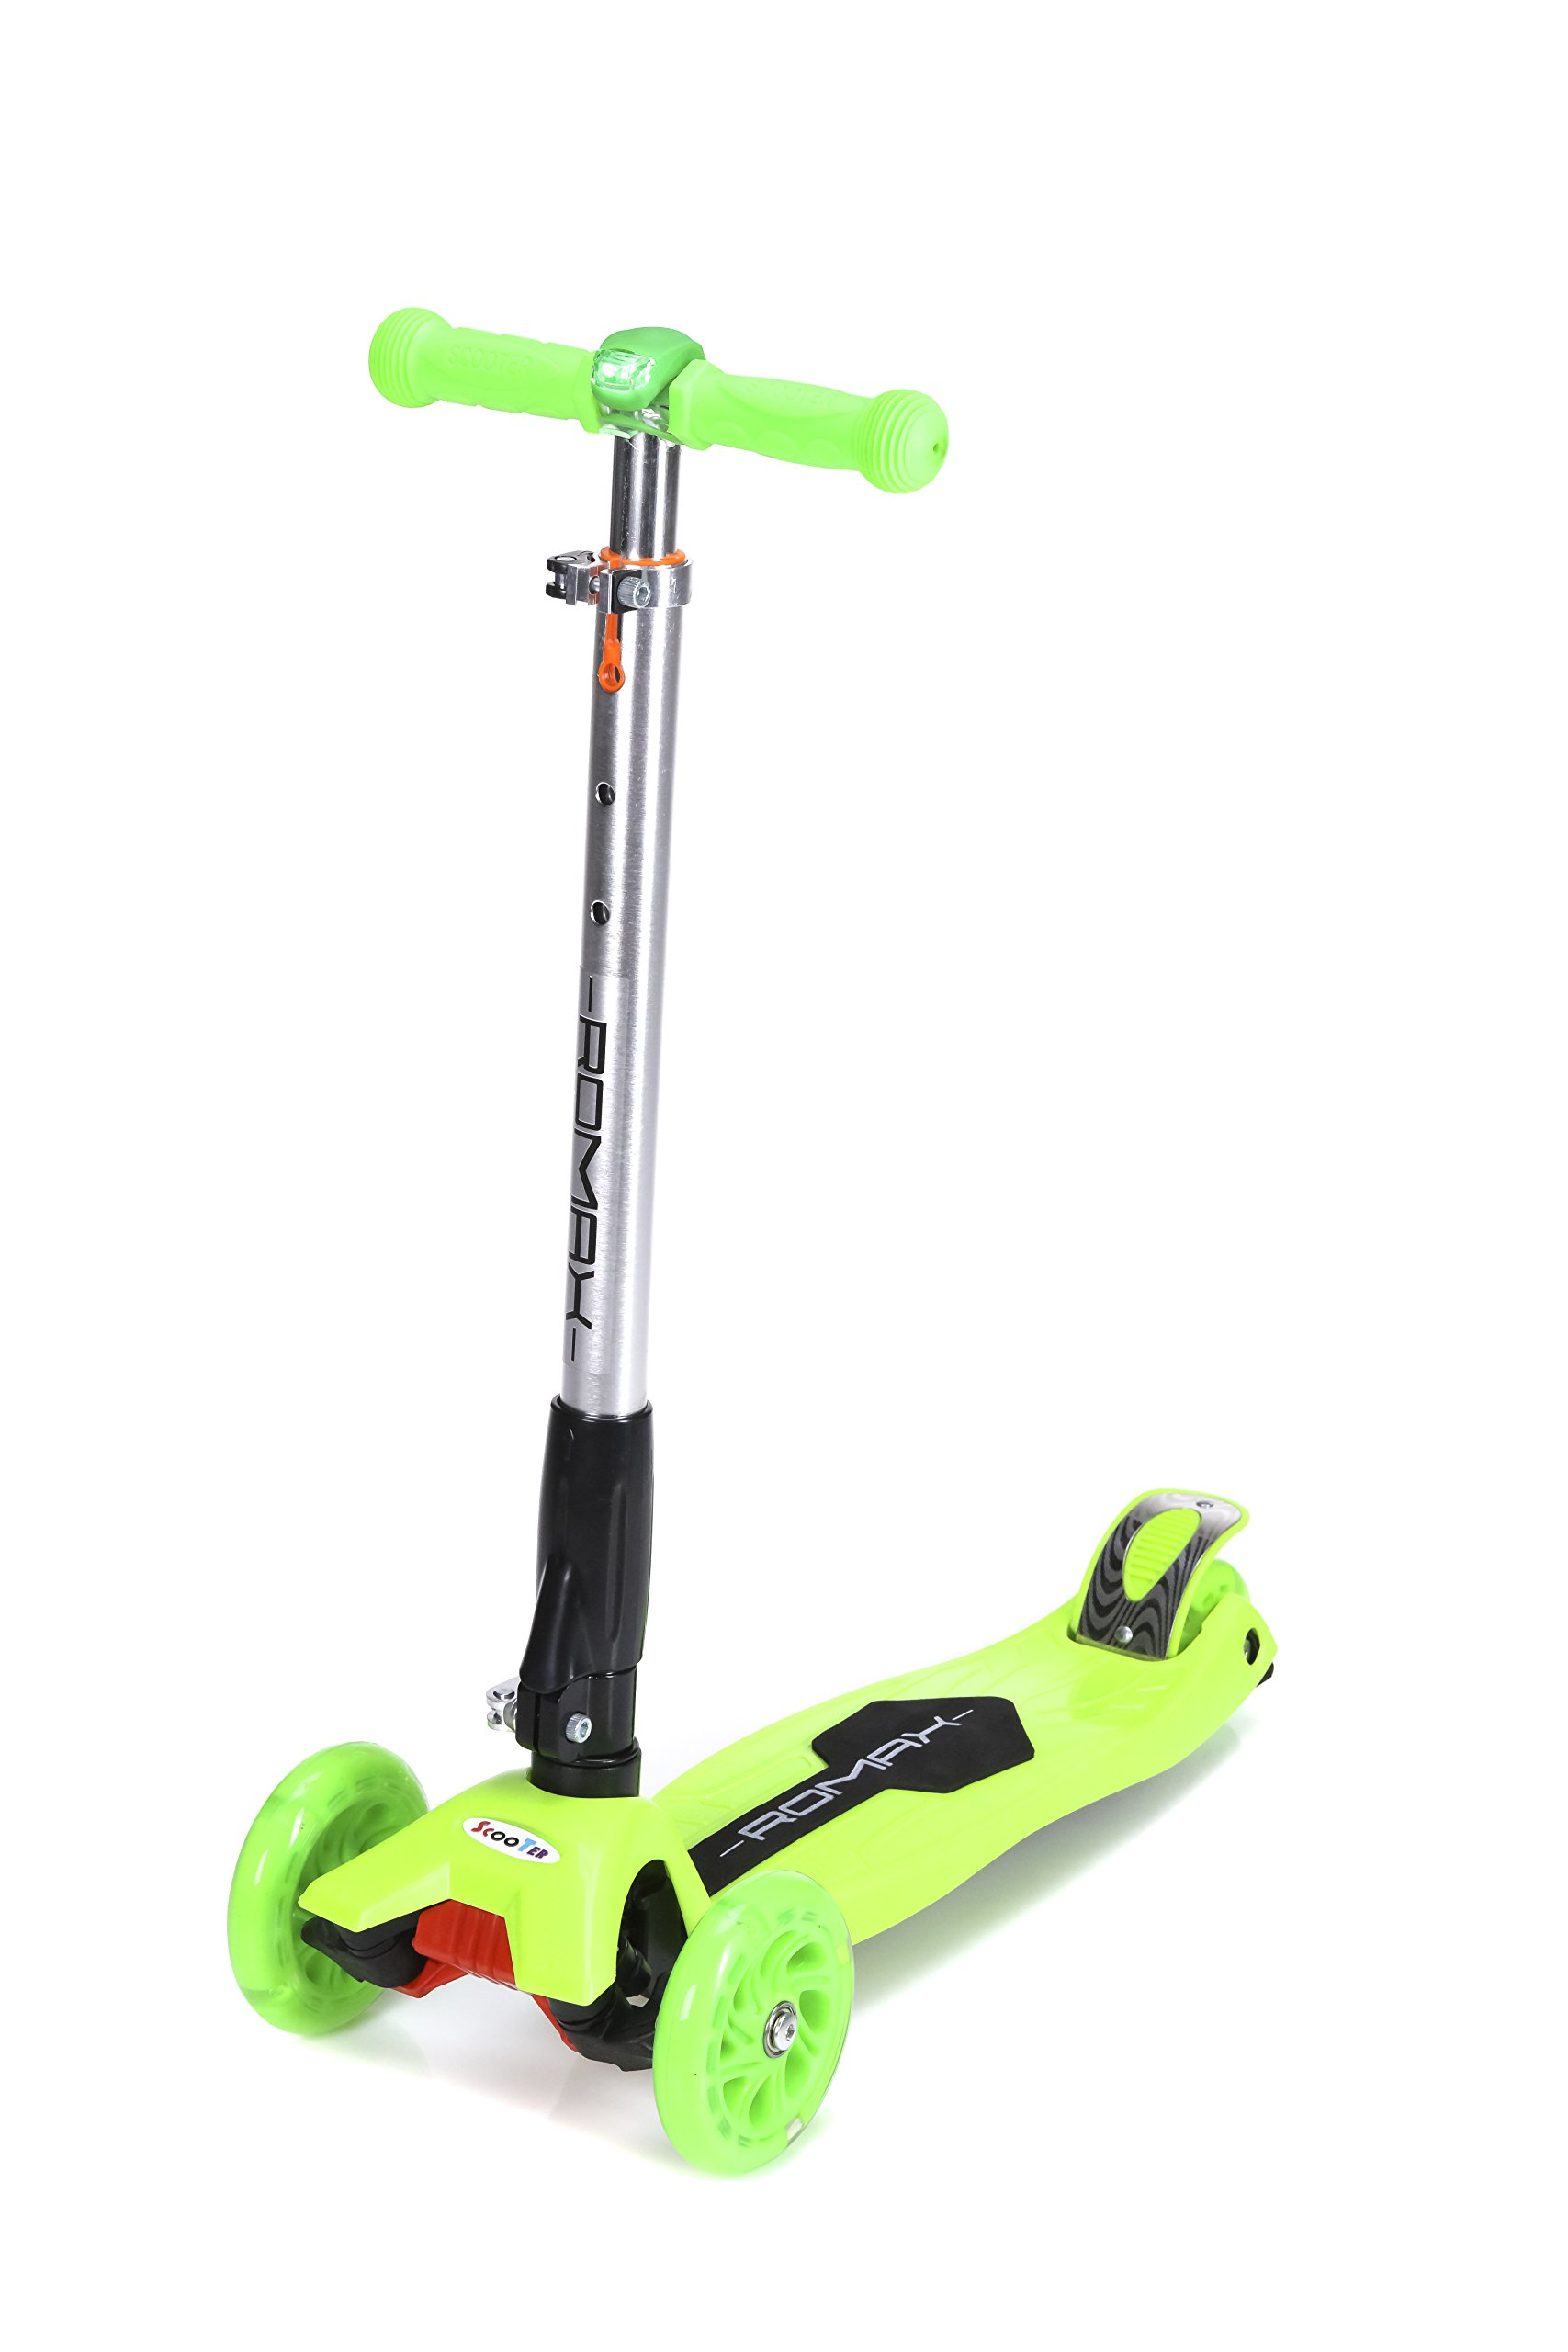 ROMAX Scooter for kids (Green), 3 wheels Kick Glider with Adjustable Height for Children, LED light in Front, Mini Scooter Non-Slippery Platform for Boys and Girls. Children Age 3-12 Years Old.